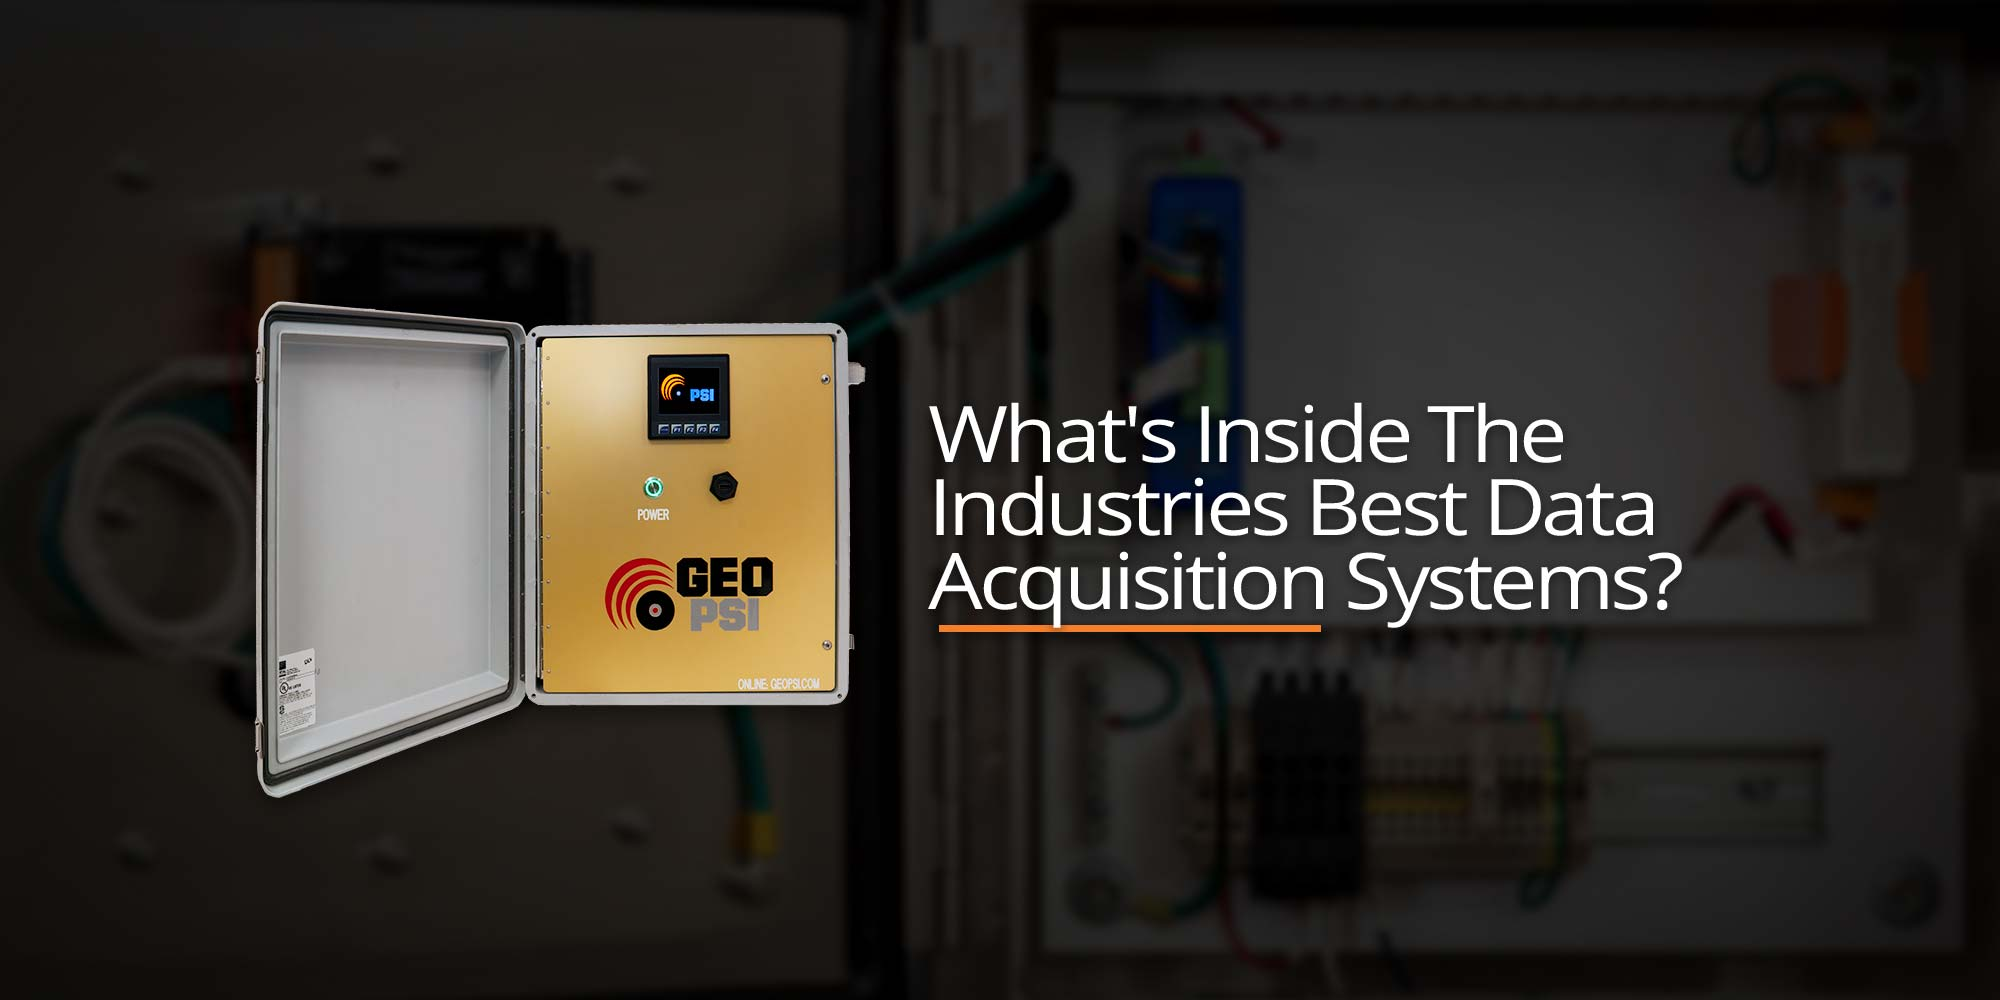 What's Inside The Industries Best Data Acquisition Systems?